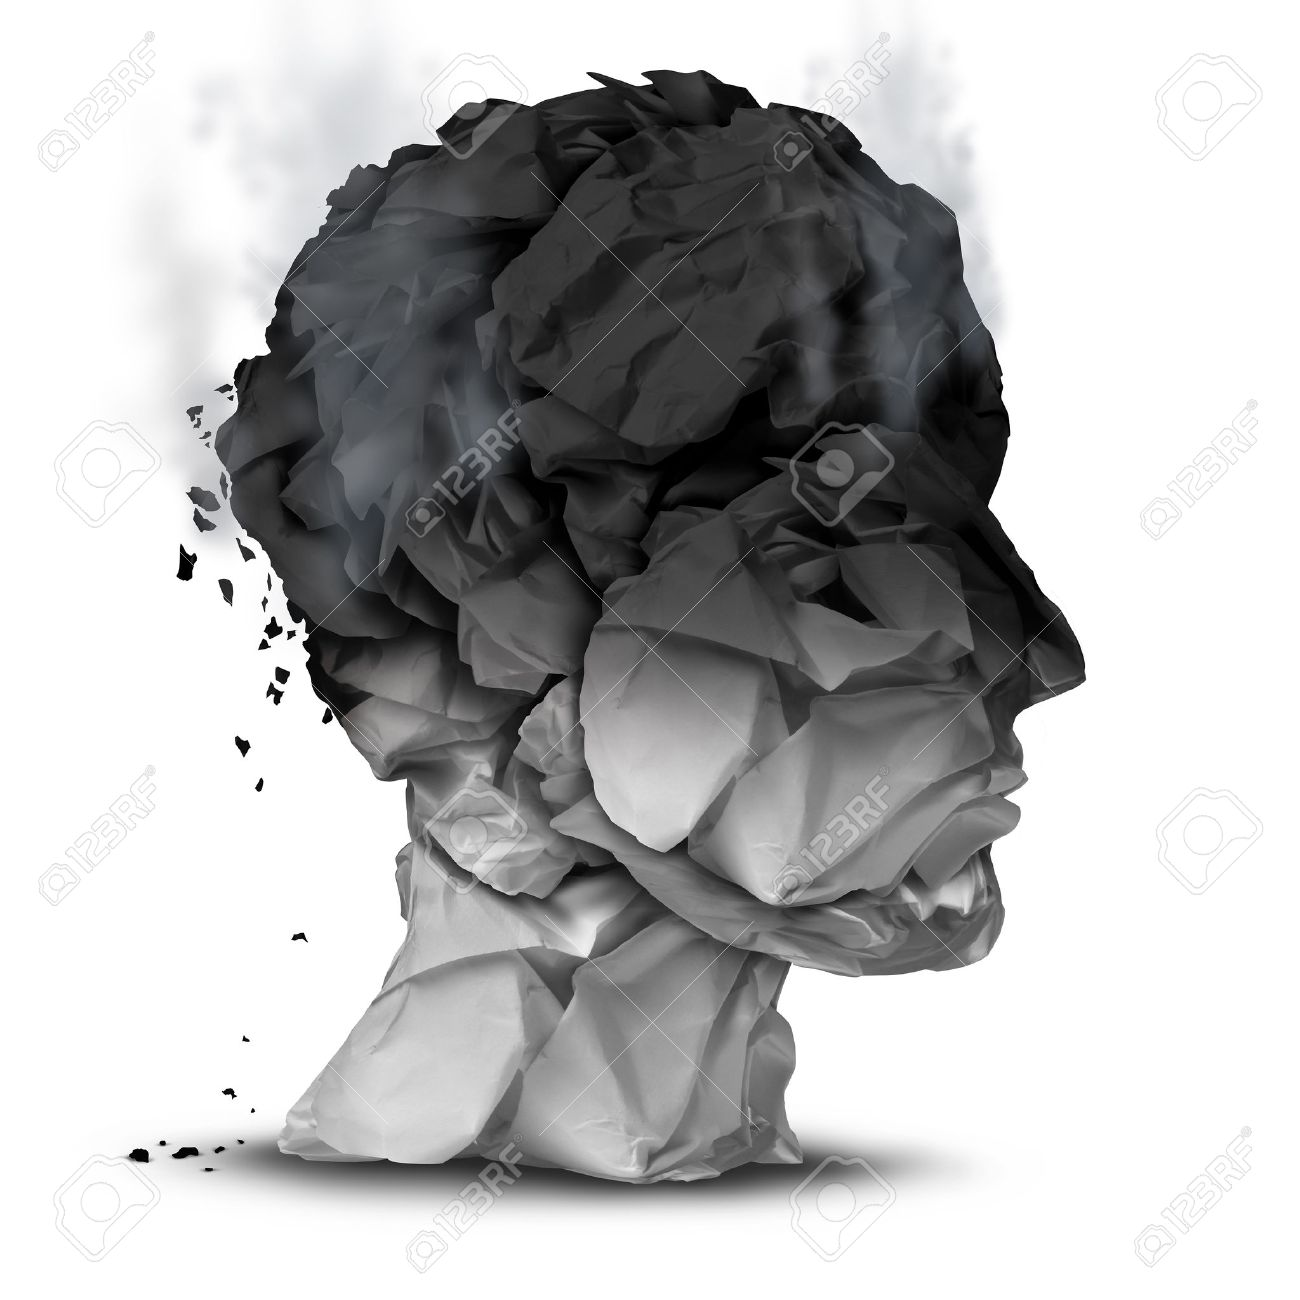 Burnout overworked concept and work stress symbol for a psychological emotional disorder diagnosis as a human head made of burnt office paper on a white background. - 38697526